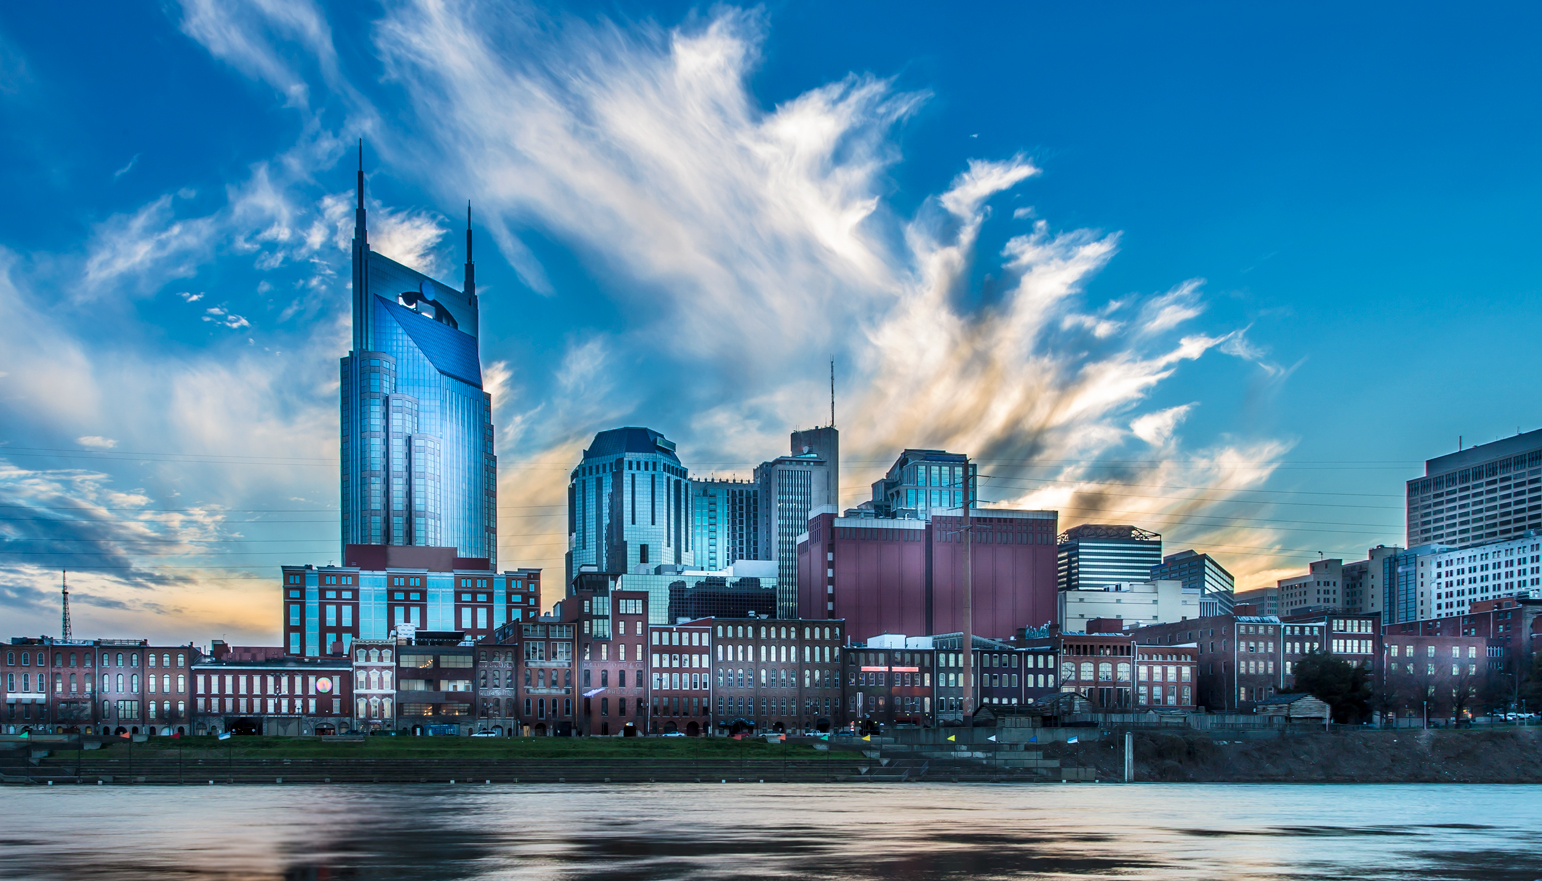 Cityscape view of Nashville, Tennessee, from across the Cumberland River.